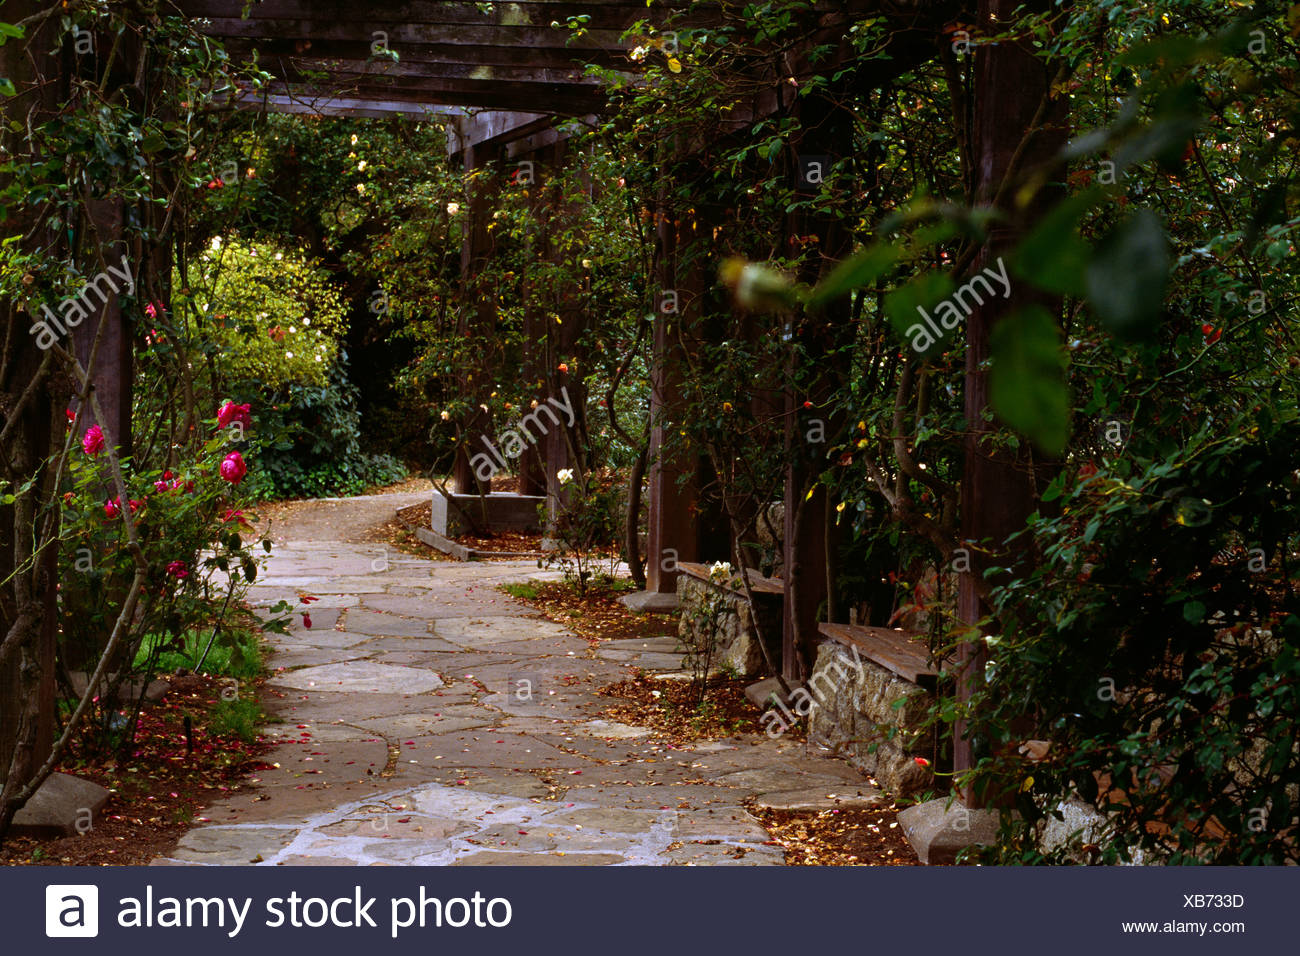 ROSE GARDEN PERGOLA WALKWAY CLIMBERS BERKELEY ROSE GARDEN BERKELEY ...